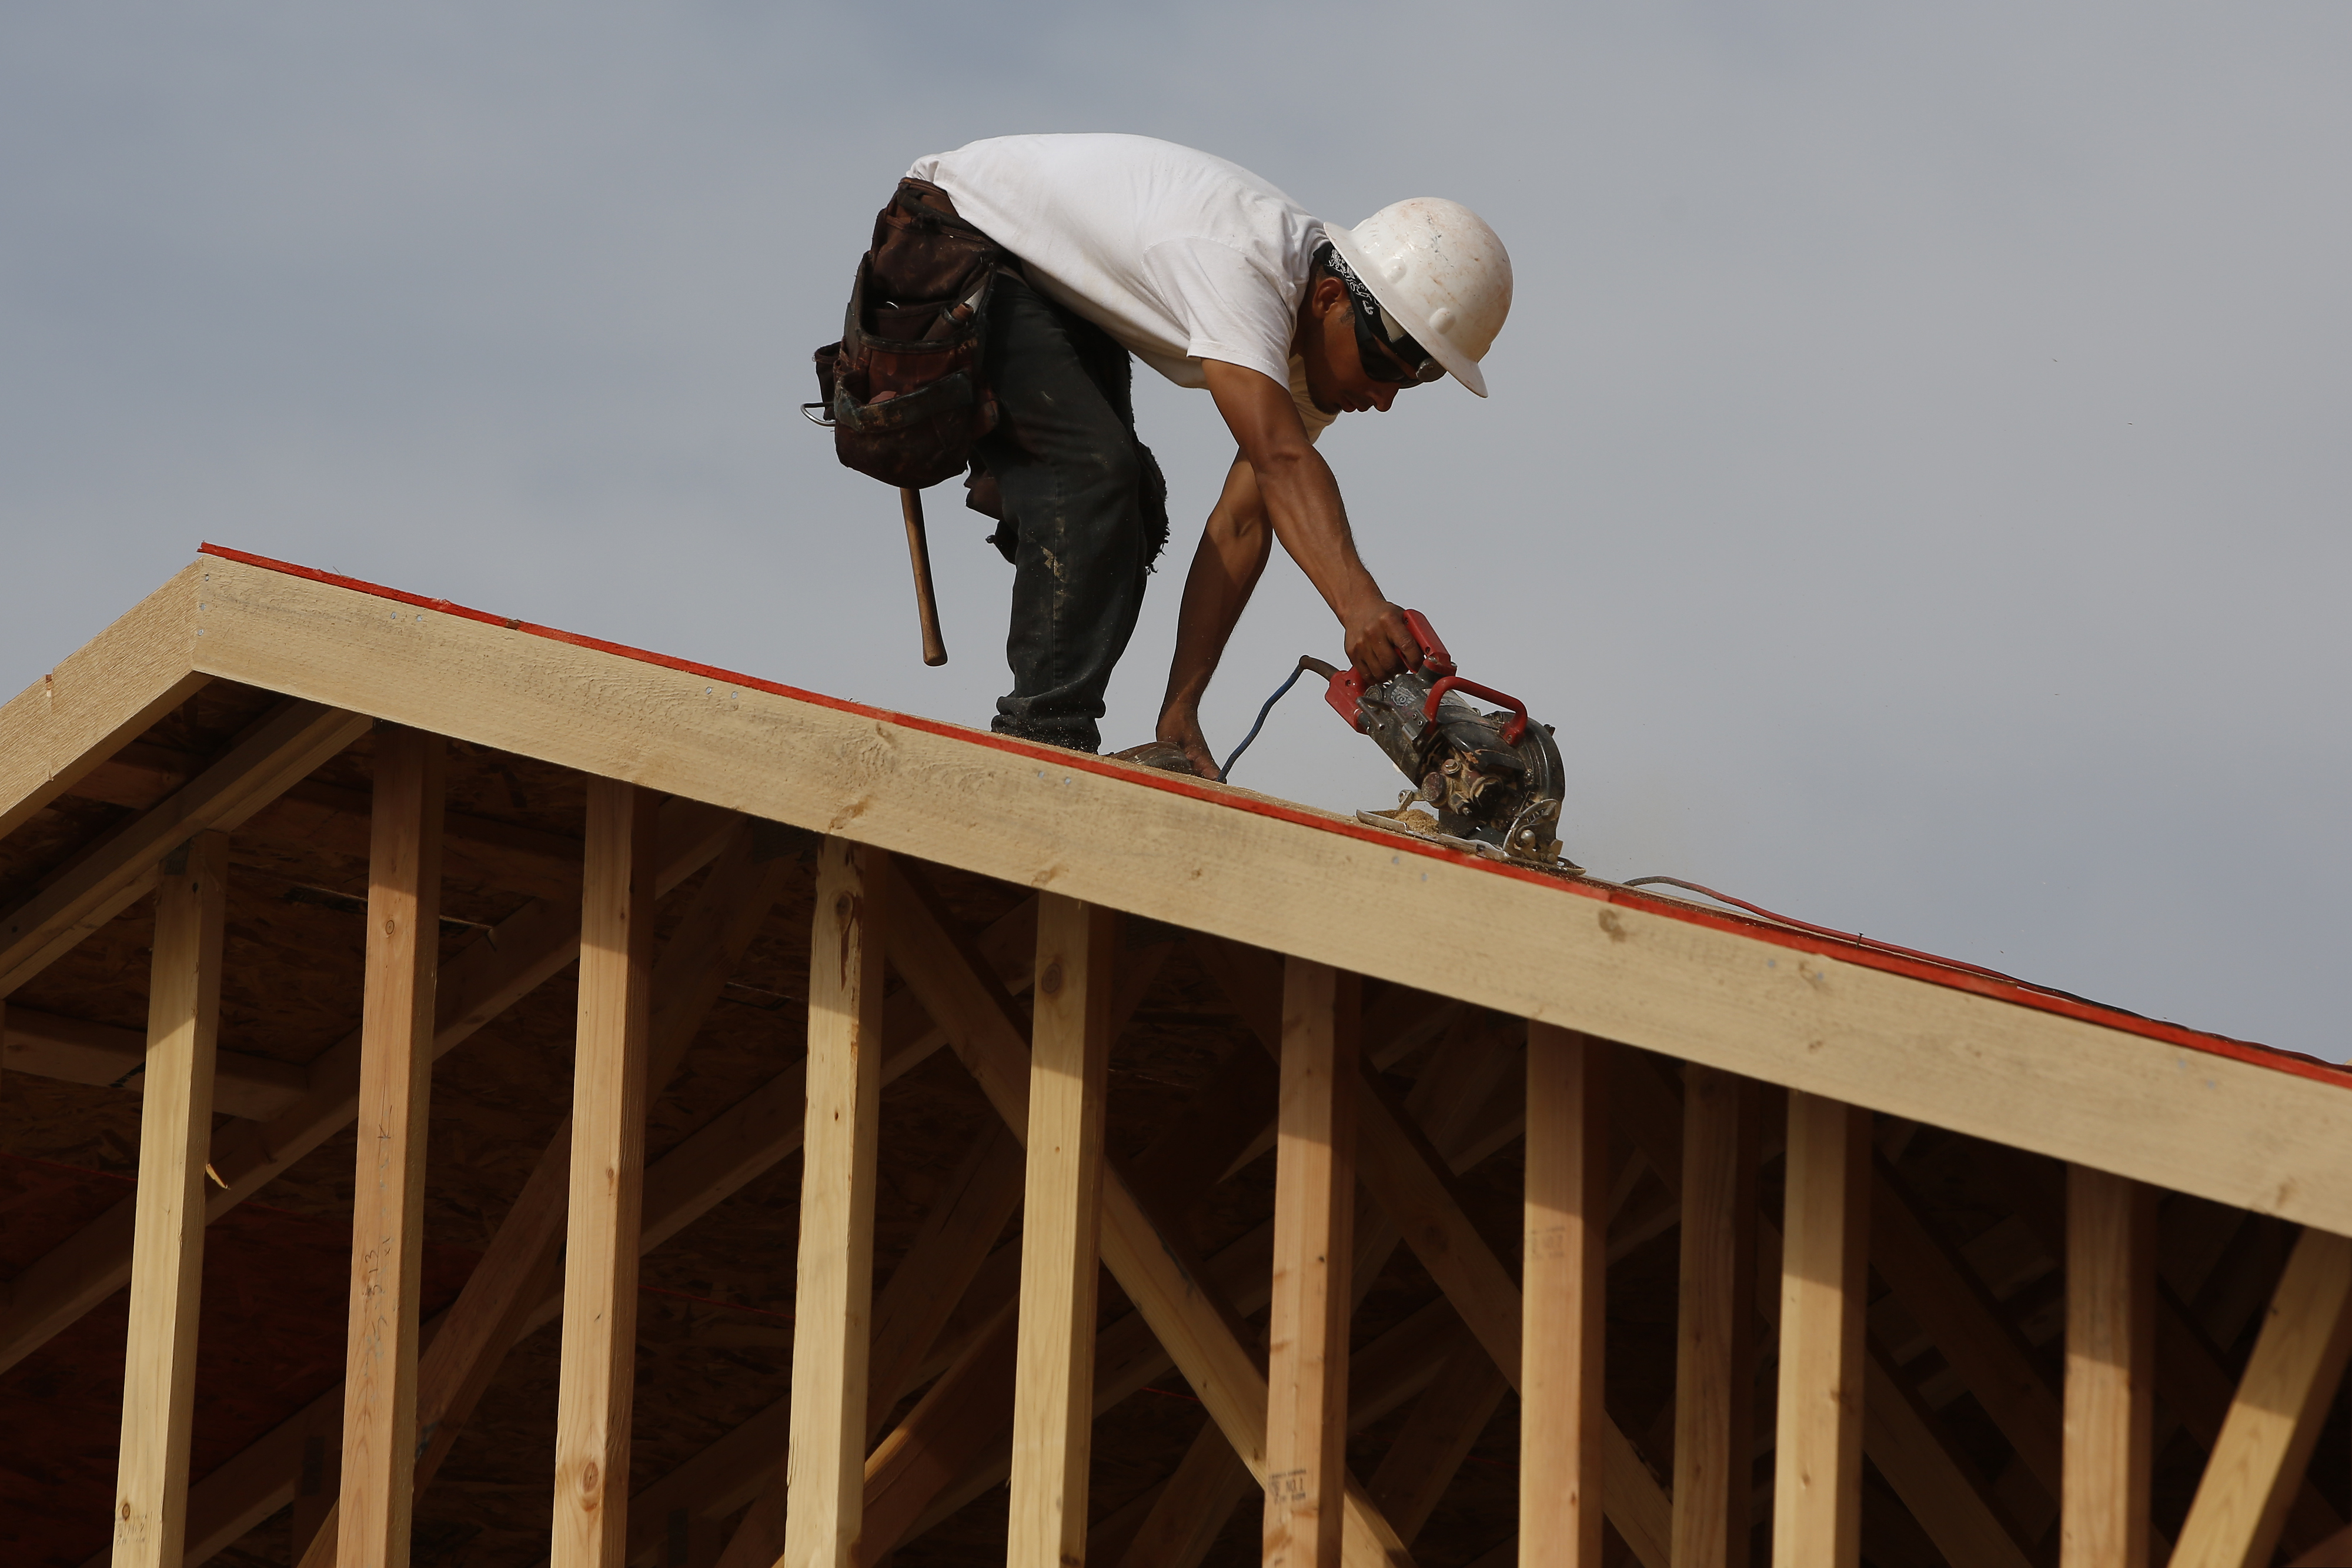 A worker builds a new Toll Brothers home.